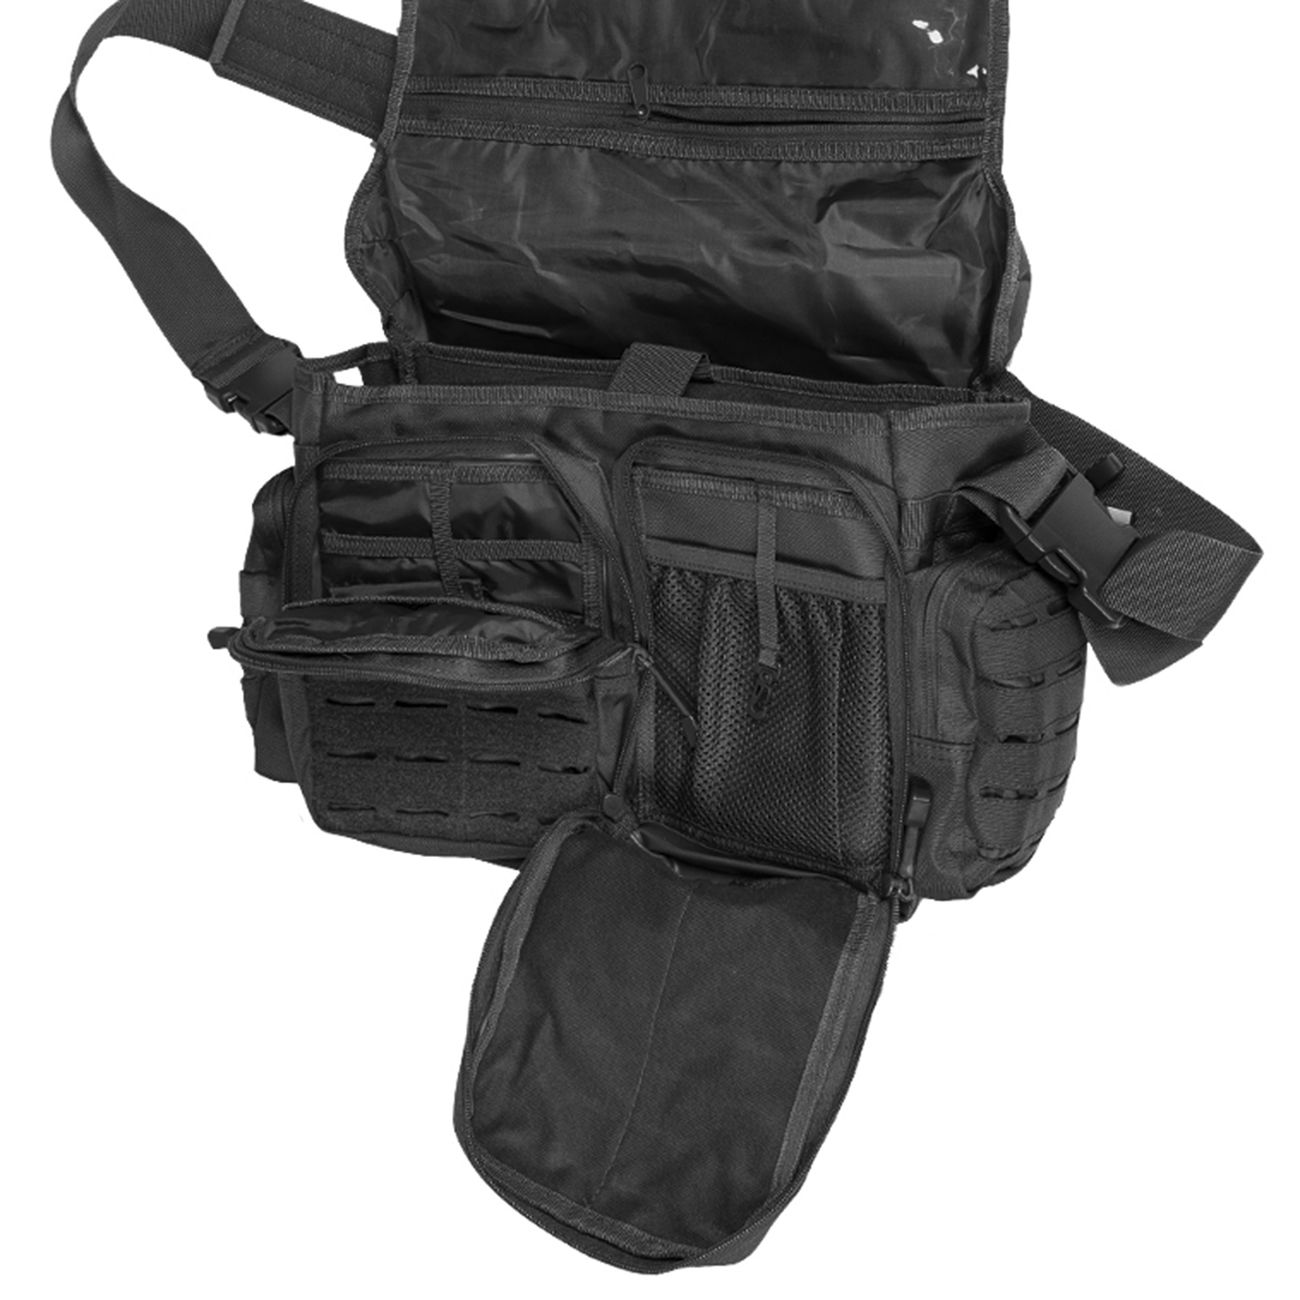 Mil-Tec Tactical Paracord Bag Large schwarz 2